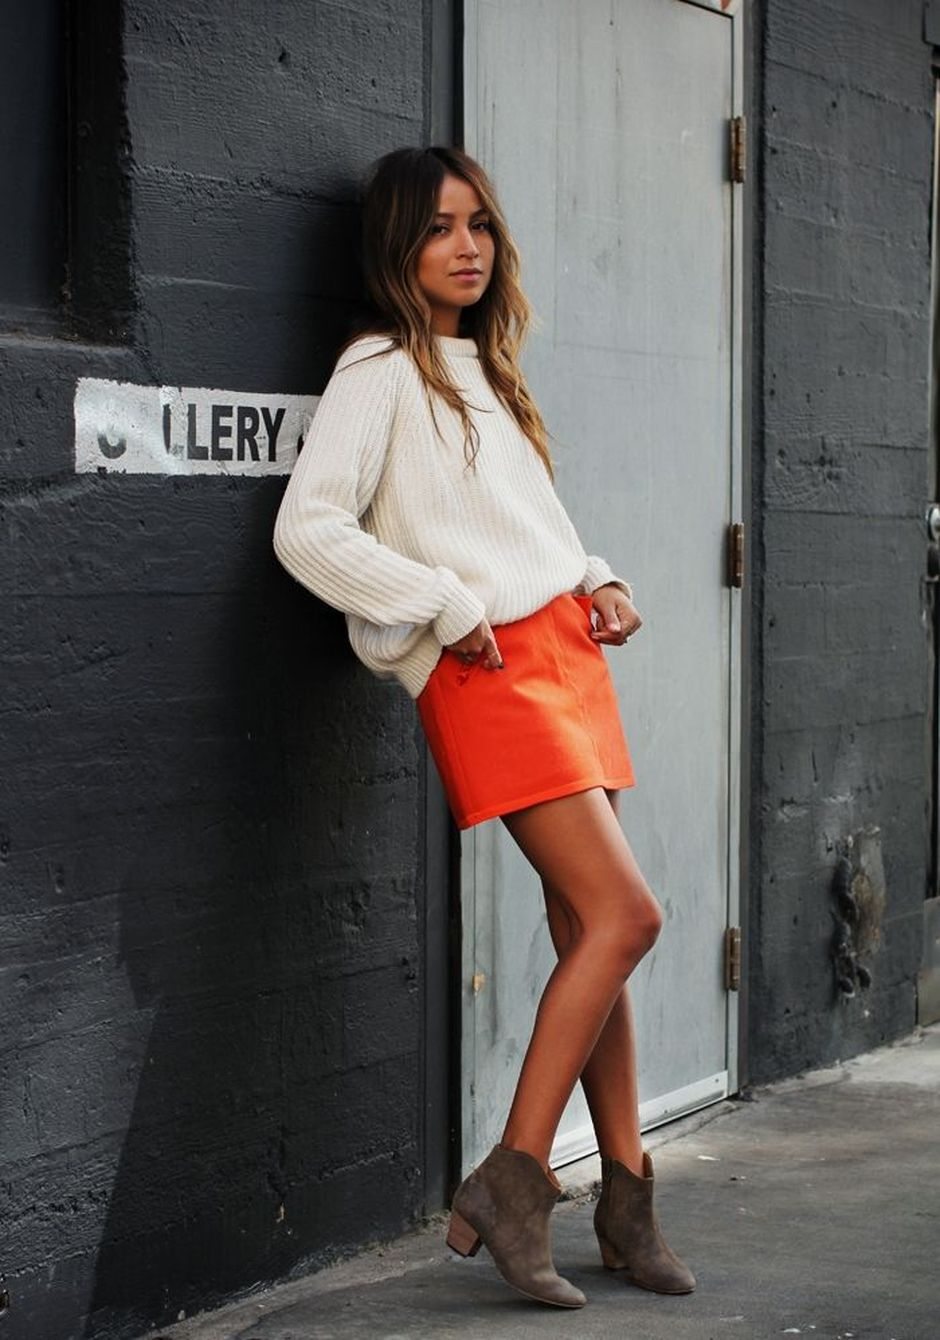 55 Orange Outfit Ideas That Make You Look Young and Fresh 10